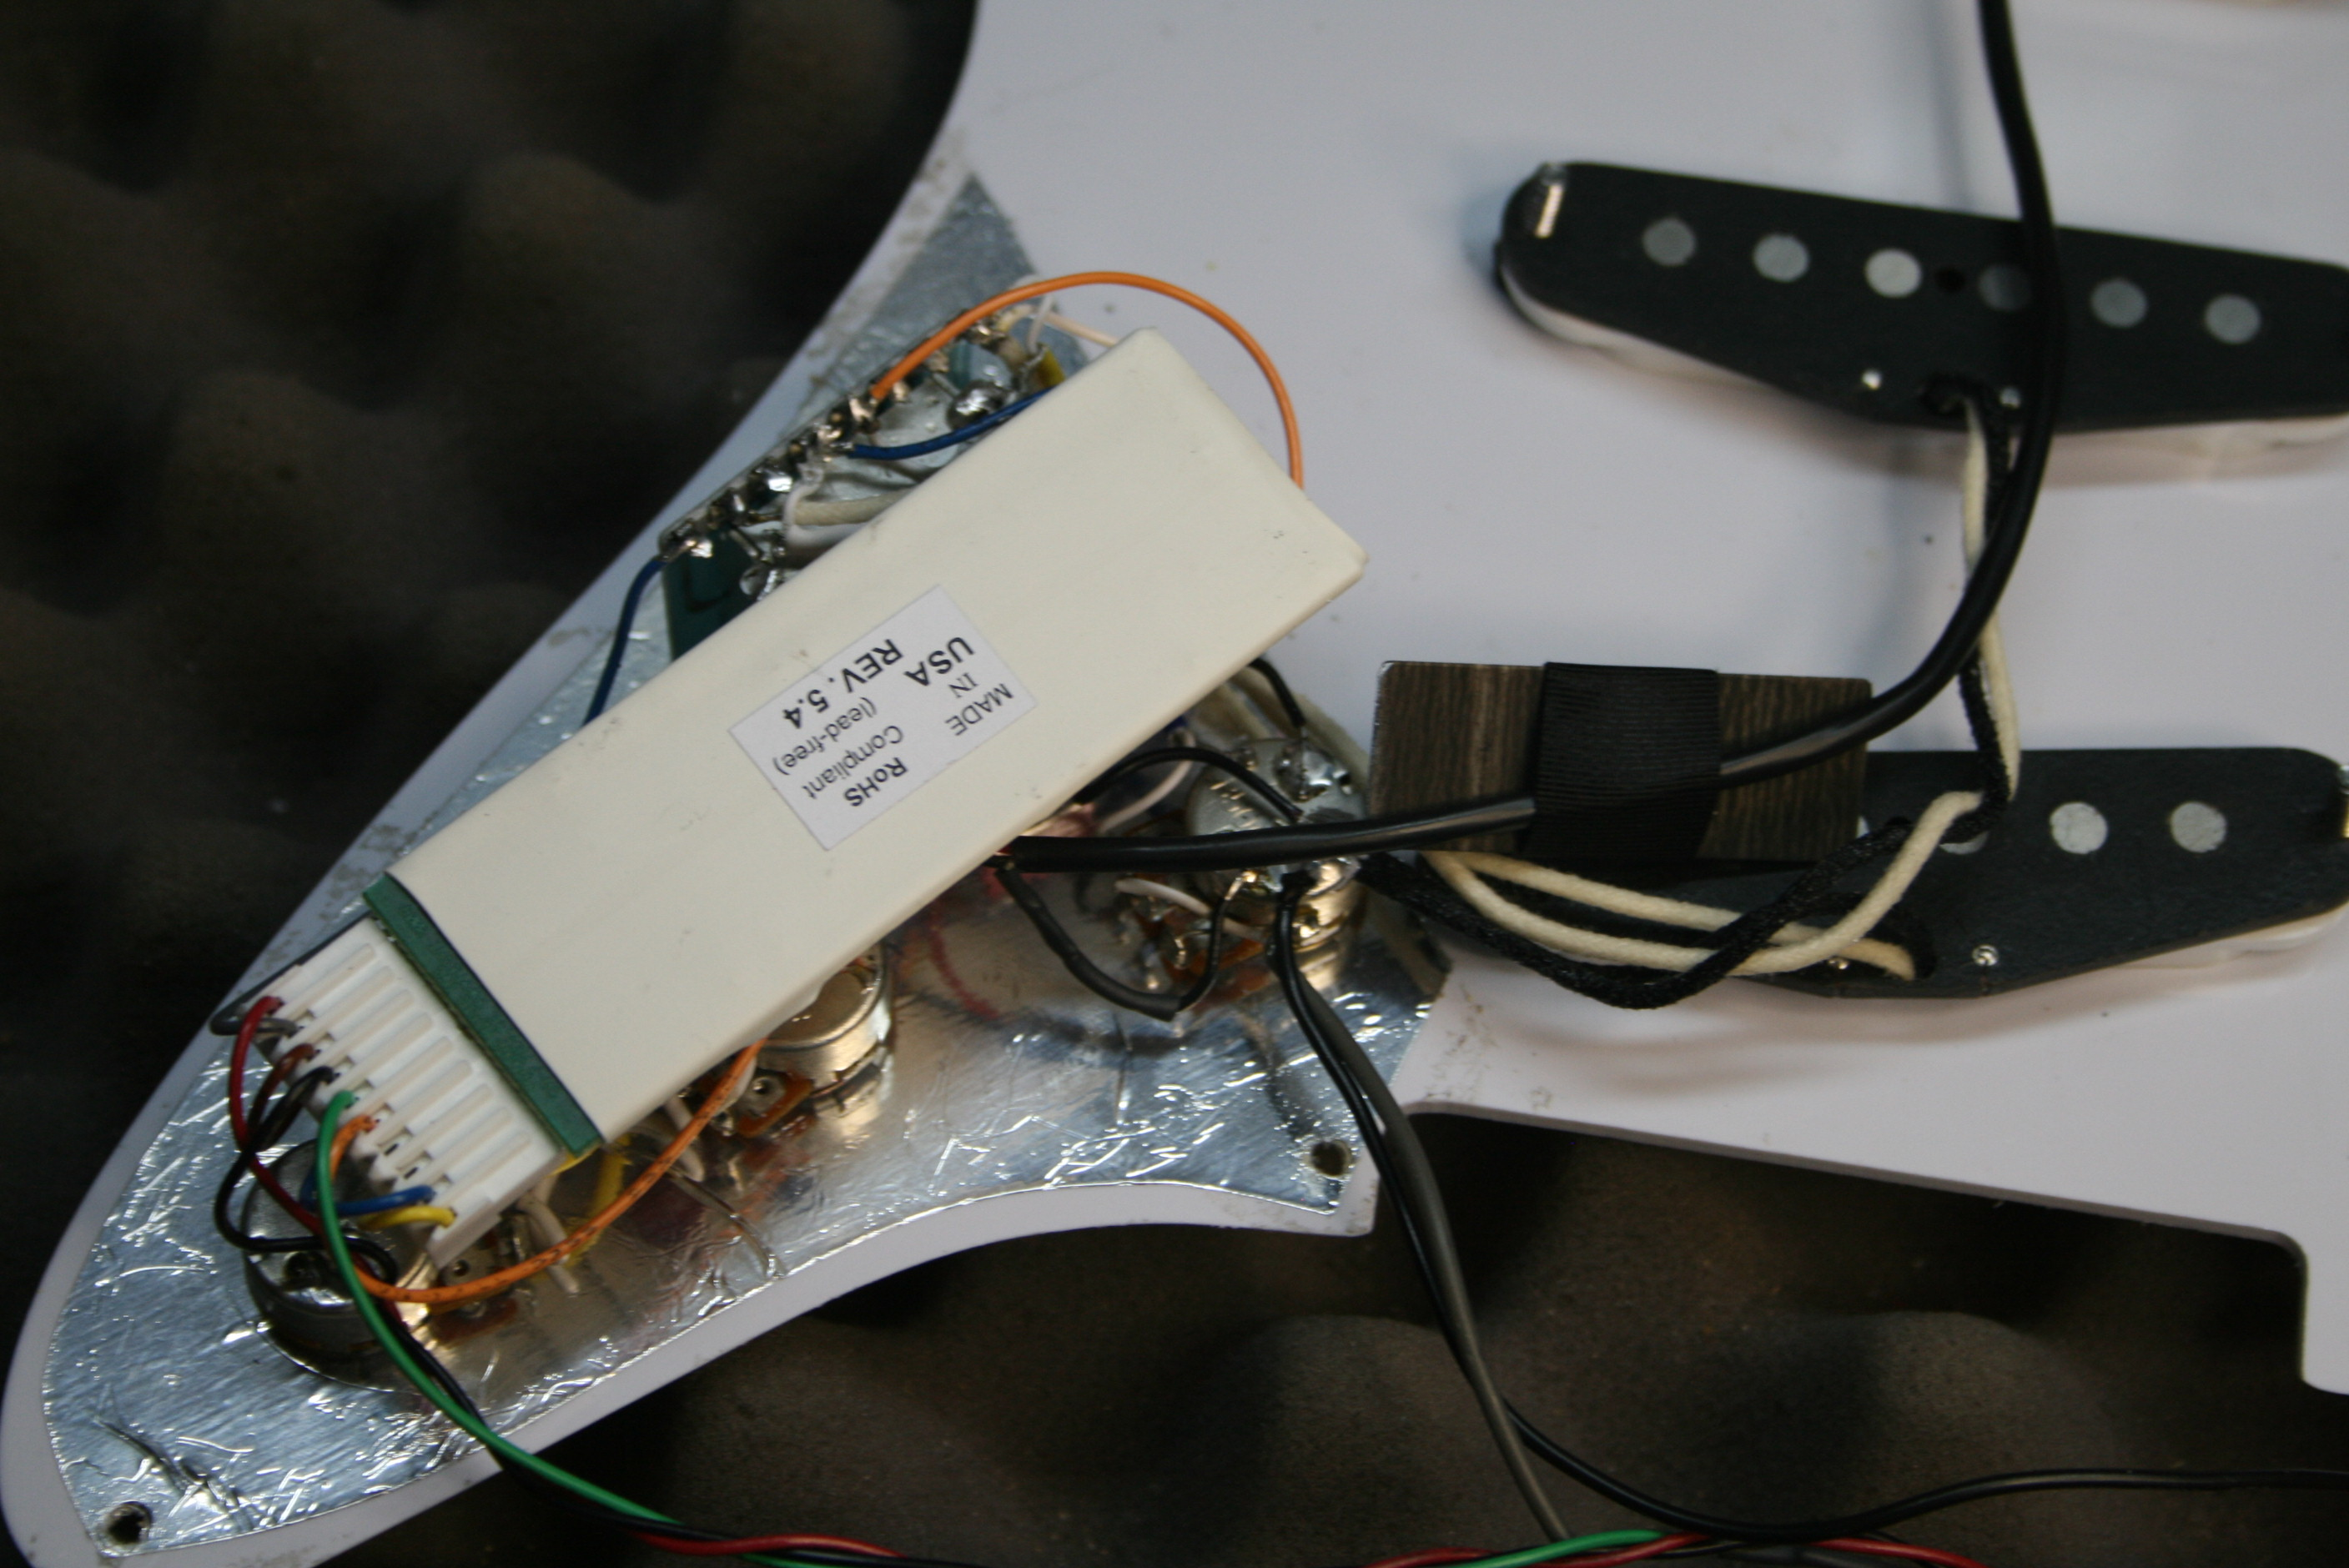 Semi Installation Les Paul Pro Wiring Diagram Strat With Sustainiac Toggle Controls Showing Board